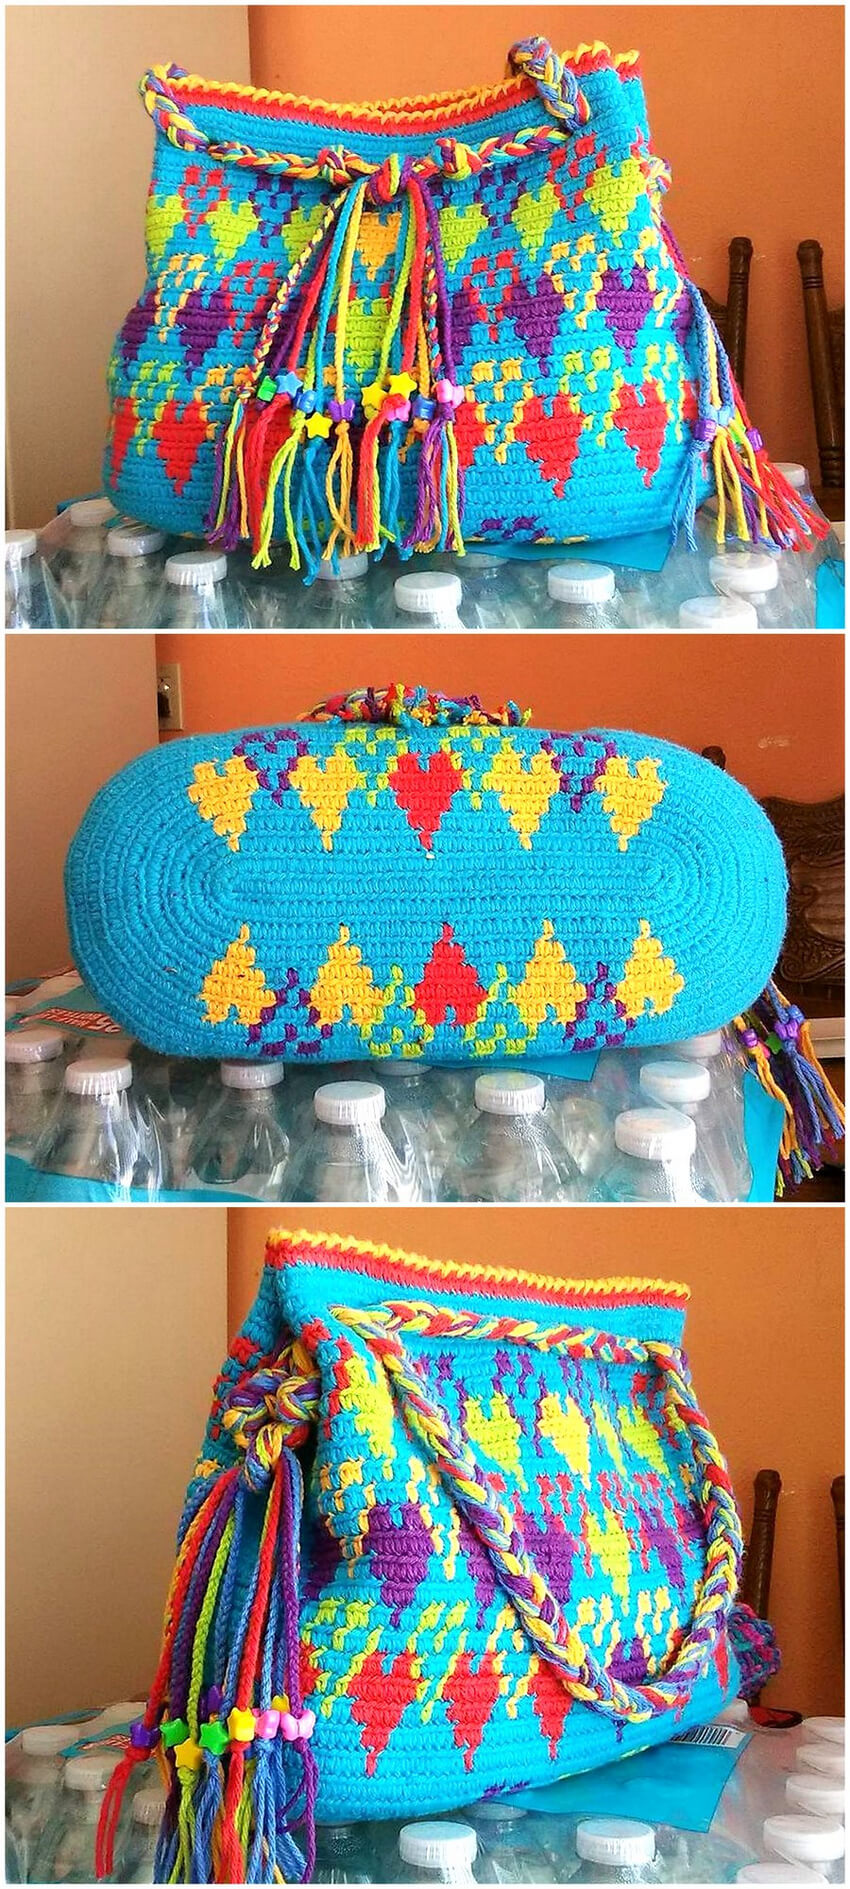 crocheted bag design ideas 15